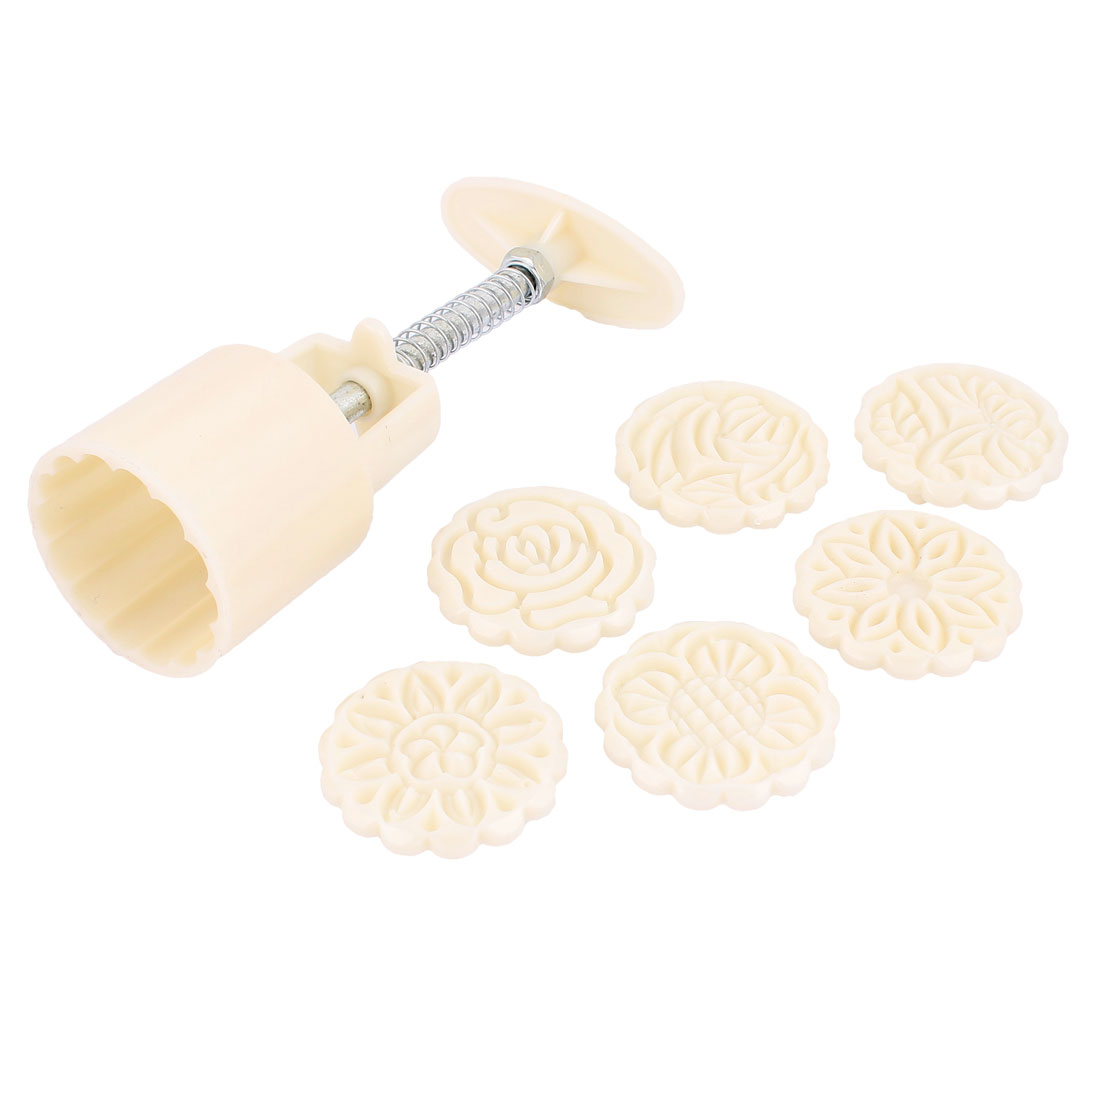 Flower Pastry Mould Round Stamps Hand Pressure DIY Tool ...